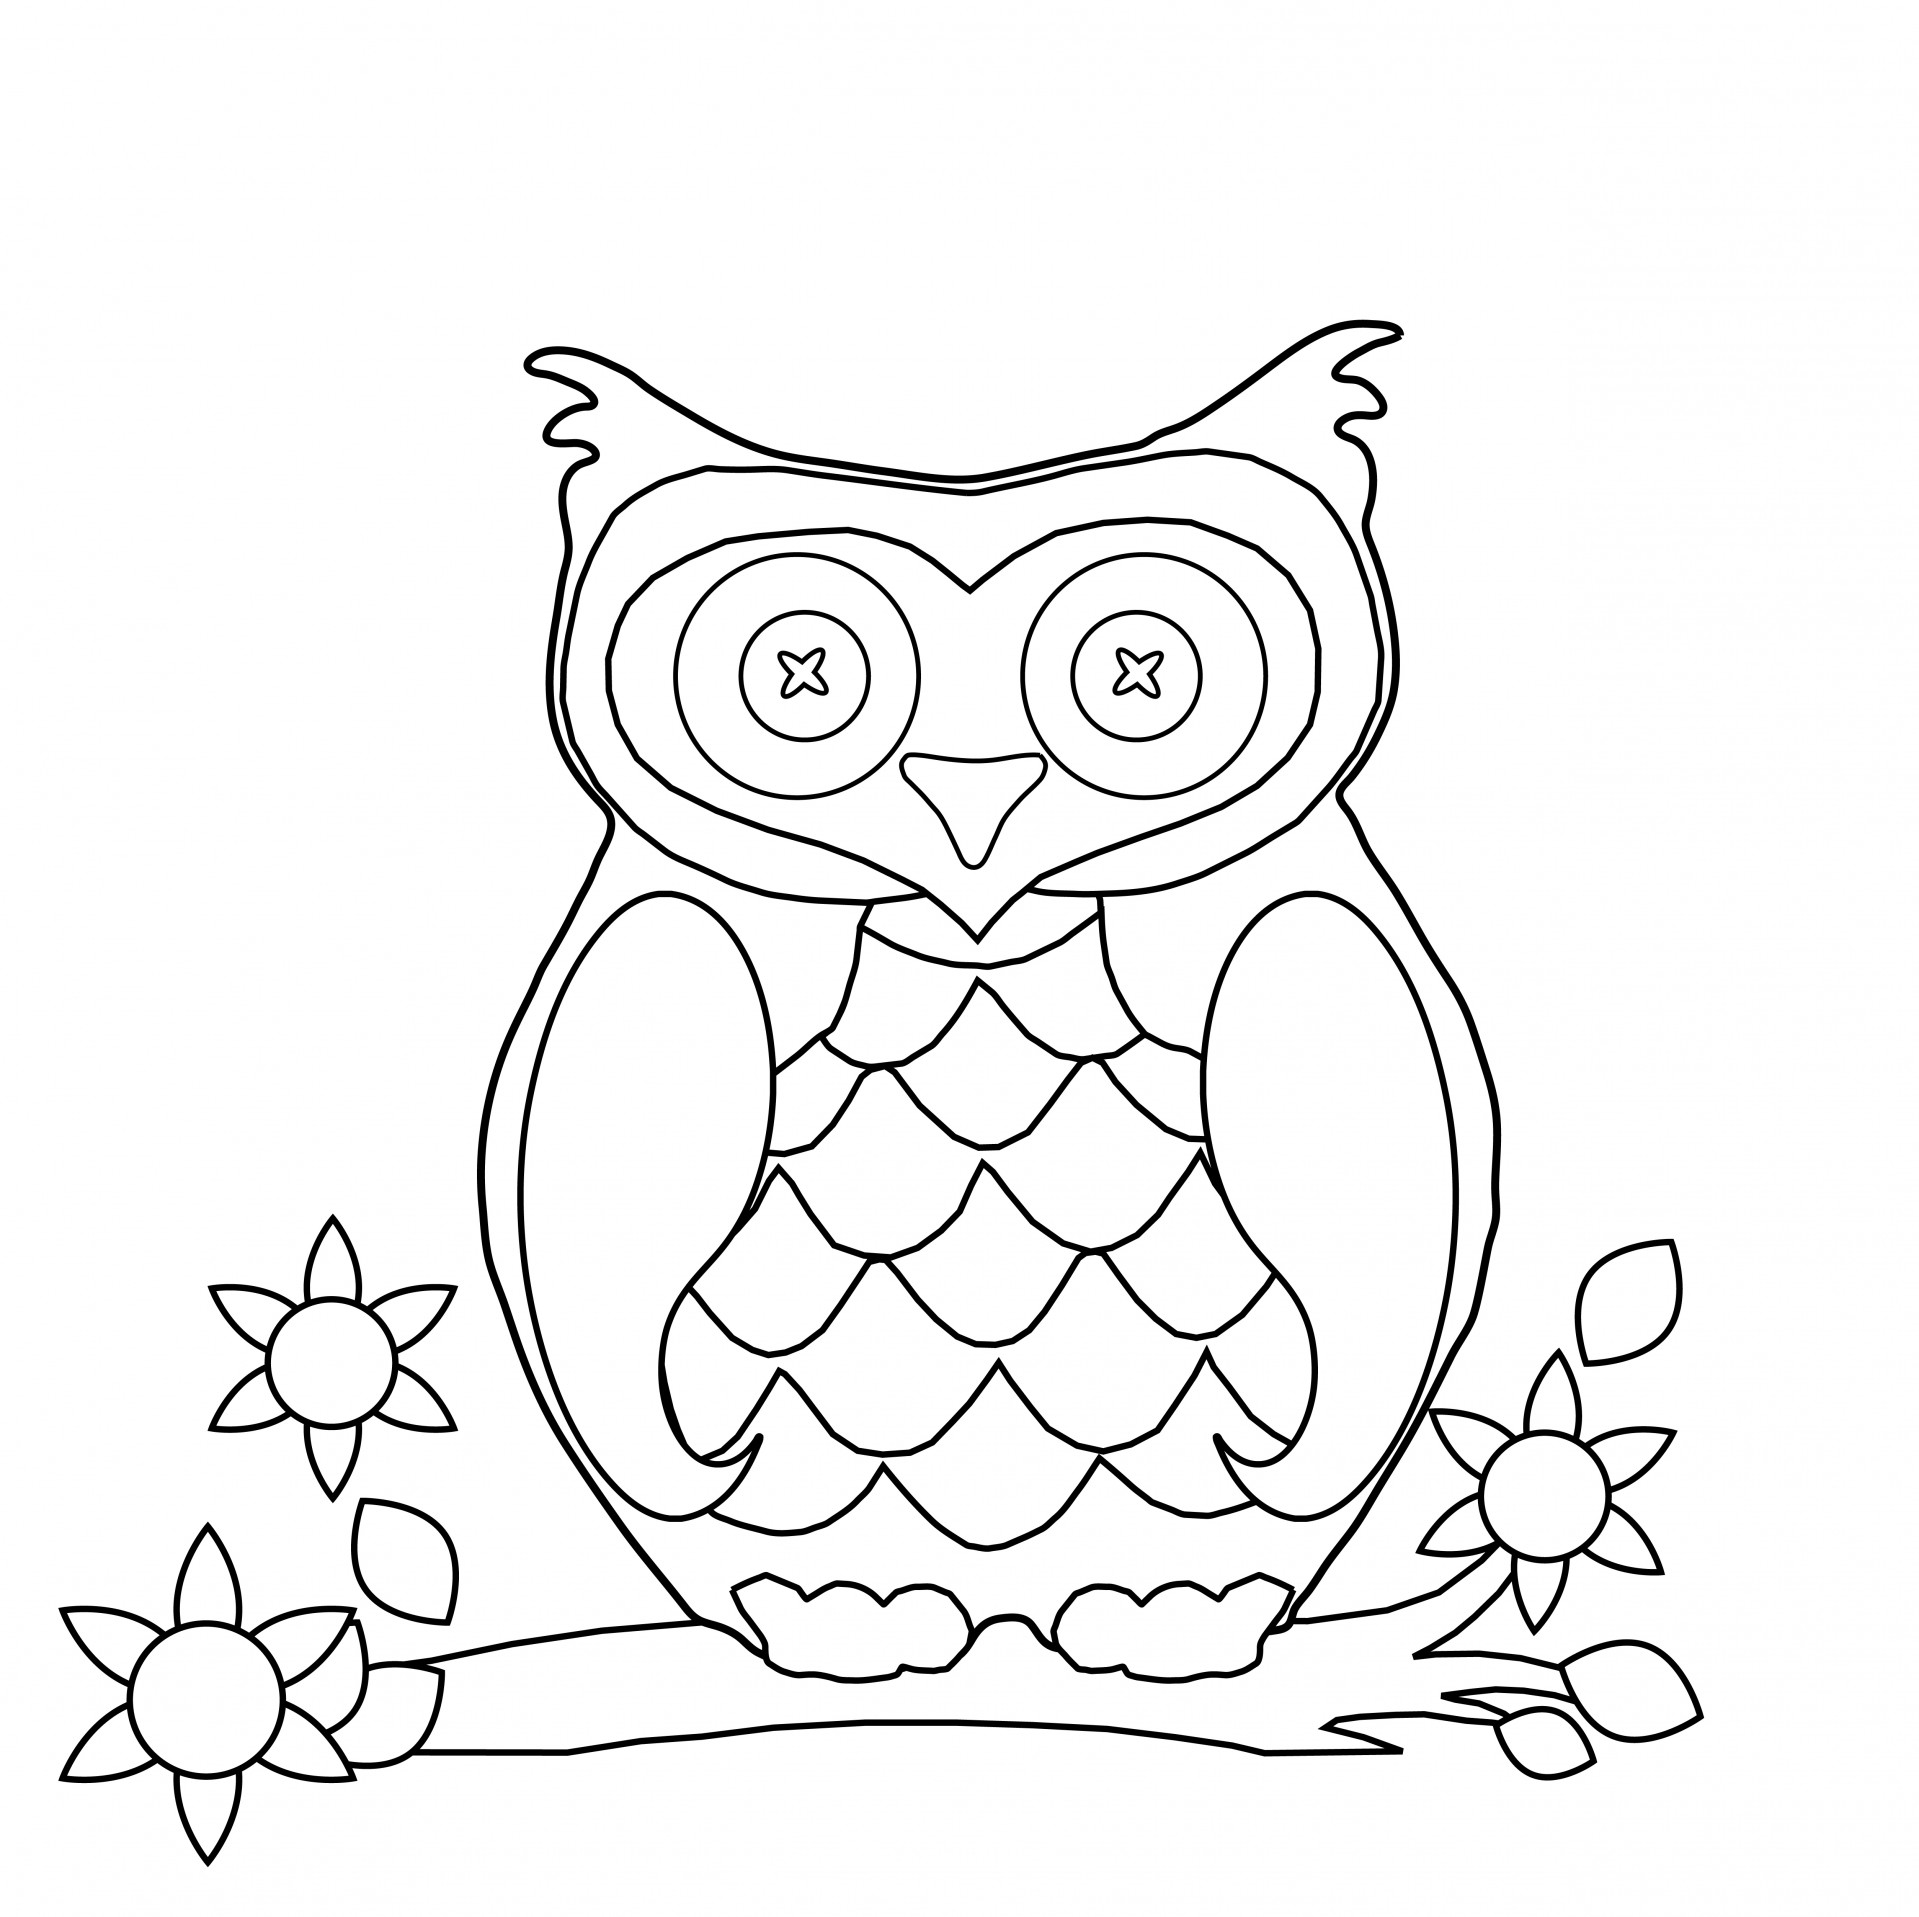 coloring kids pictures free printable tangled coloring pages for kids coloring kids pictures